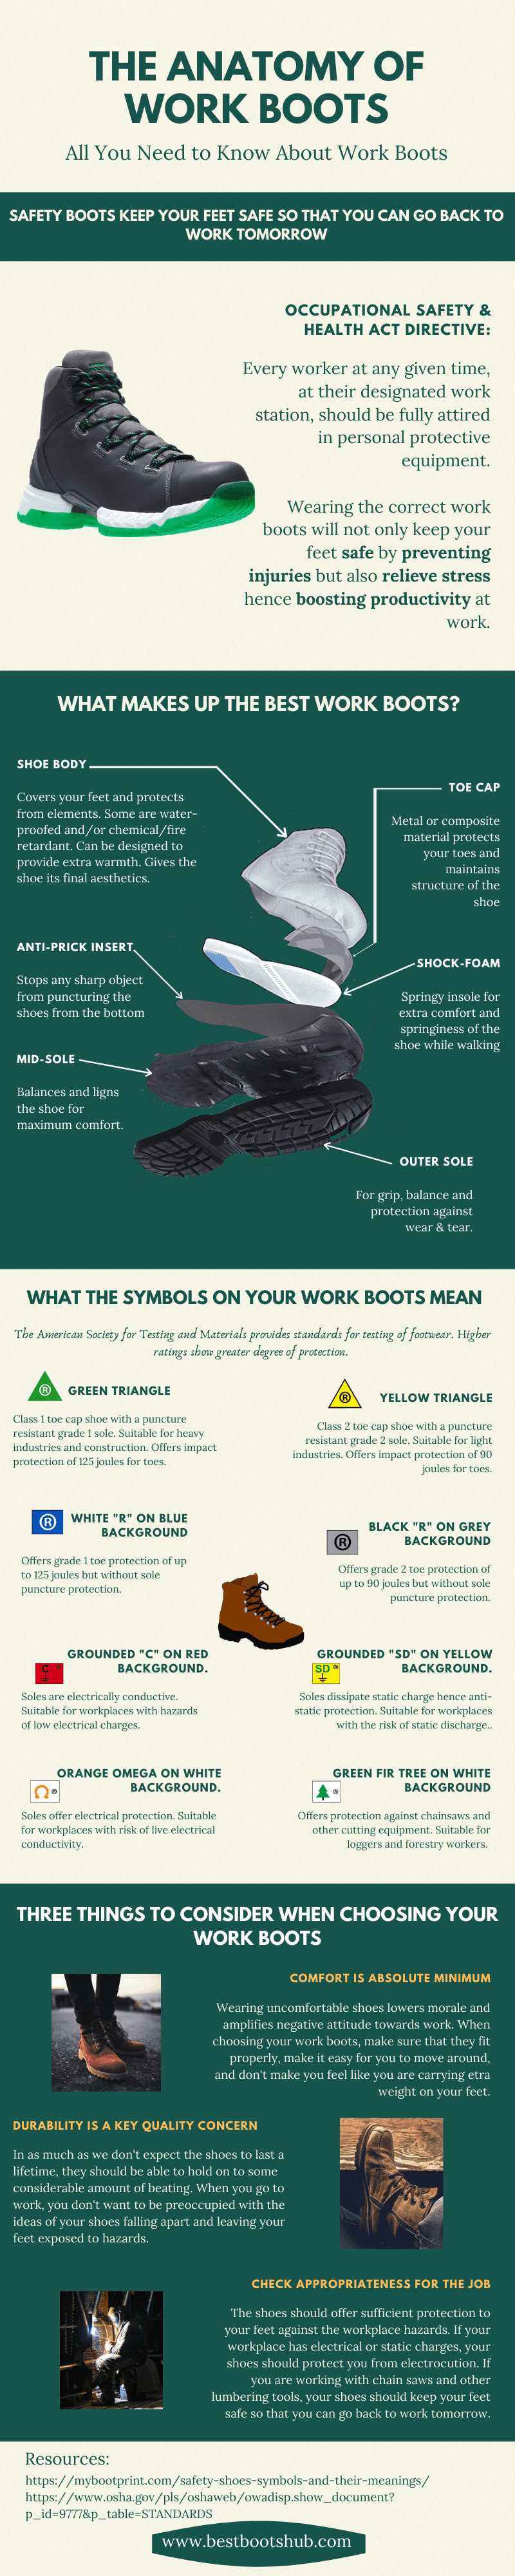 The Anatomy of Work Boots #infographic